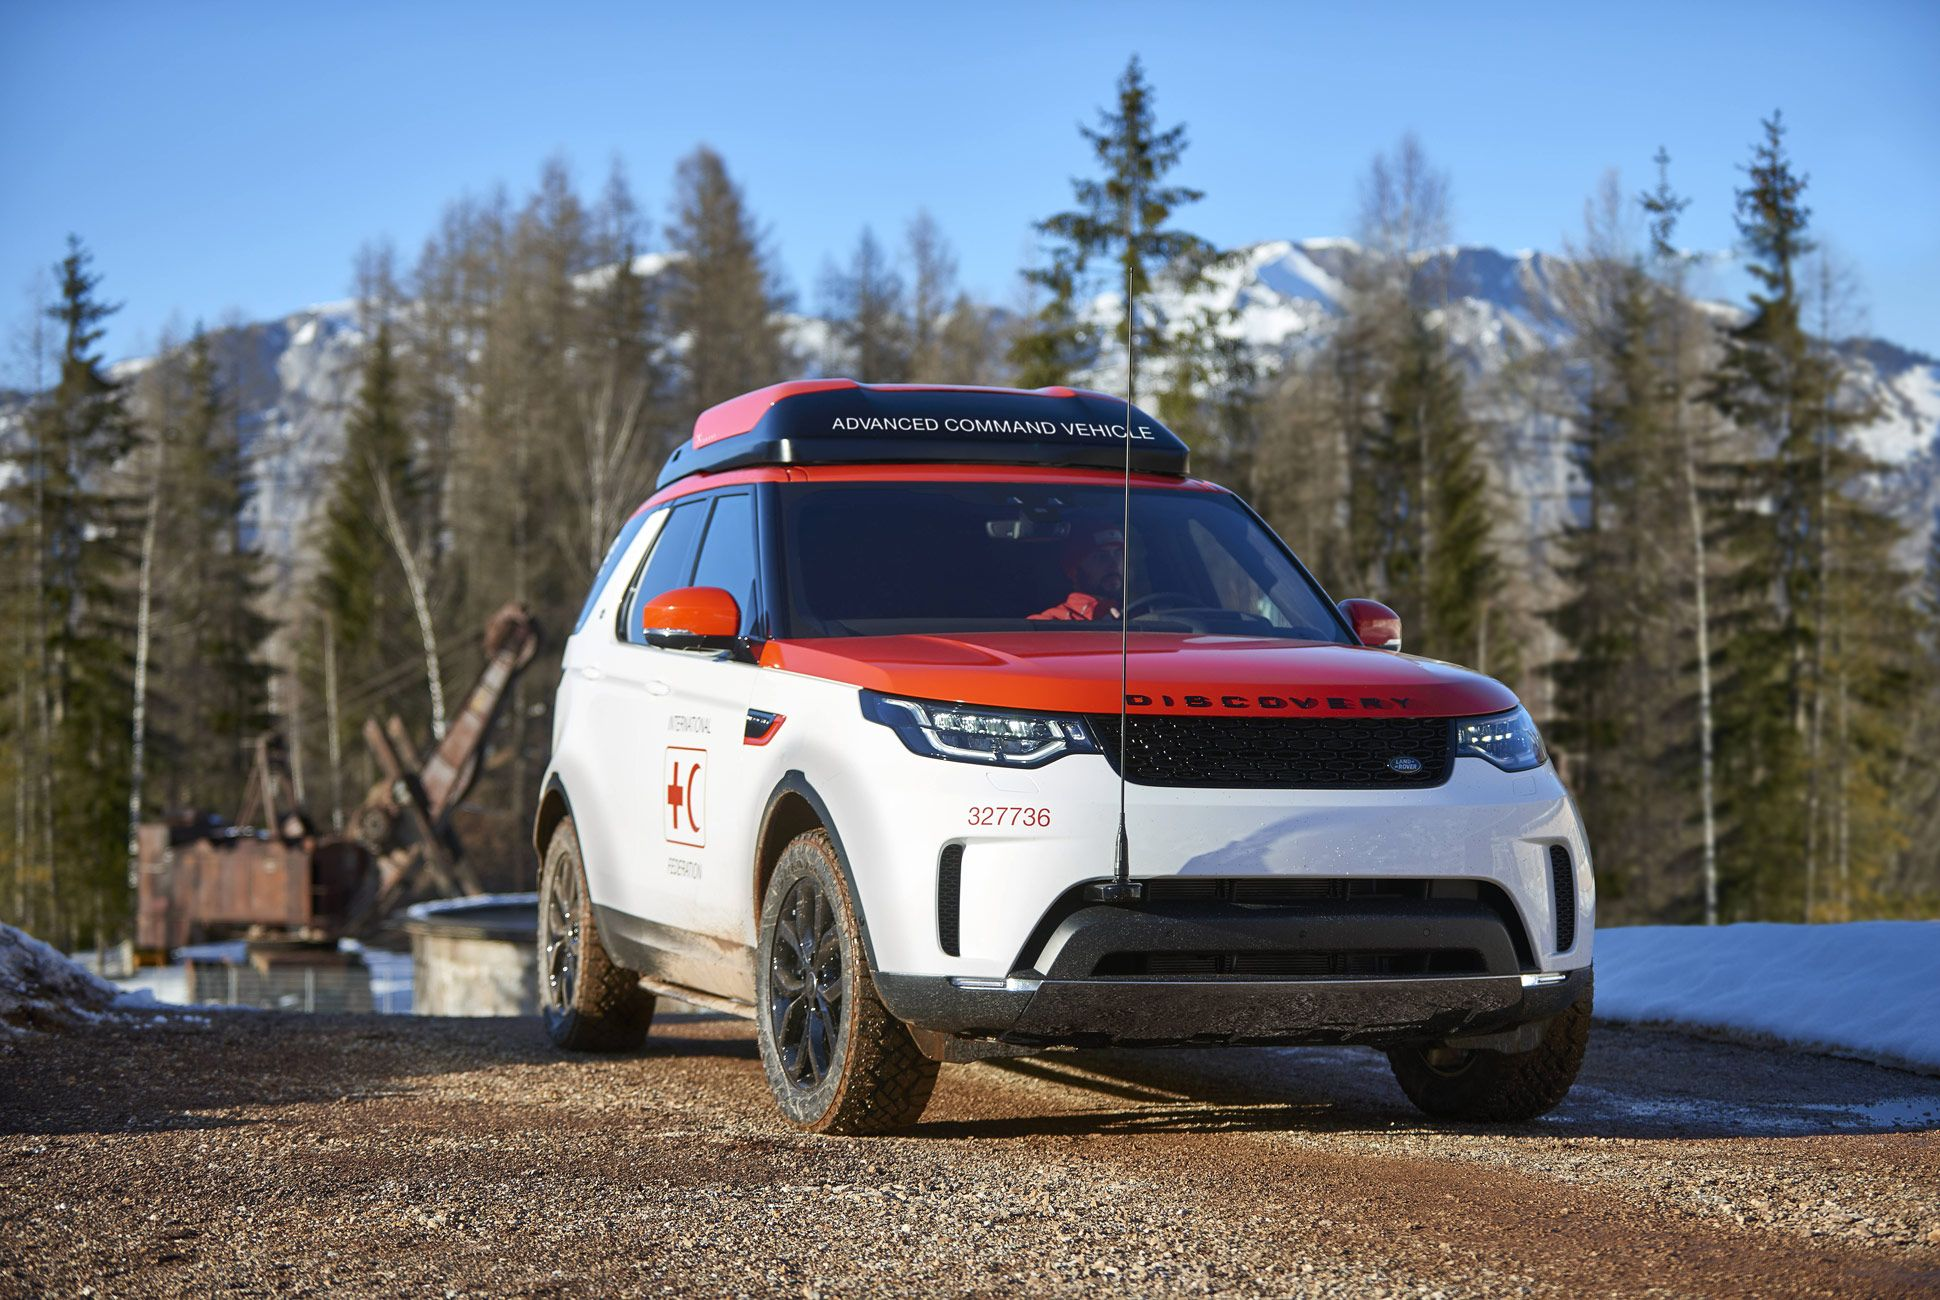 With project hero jaguar land rover svo modified a discovery to help the austrian red